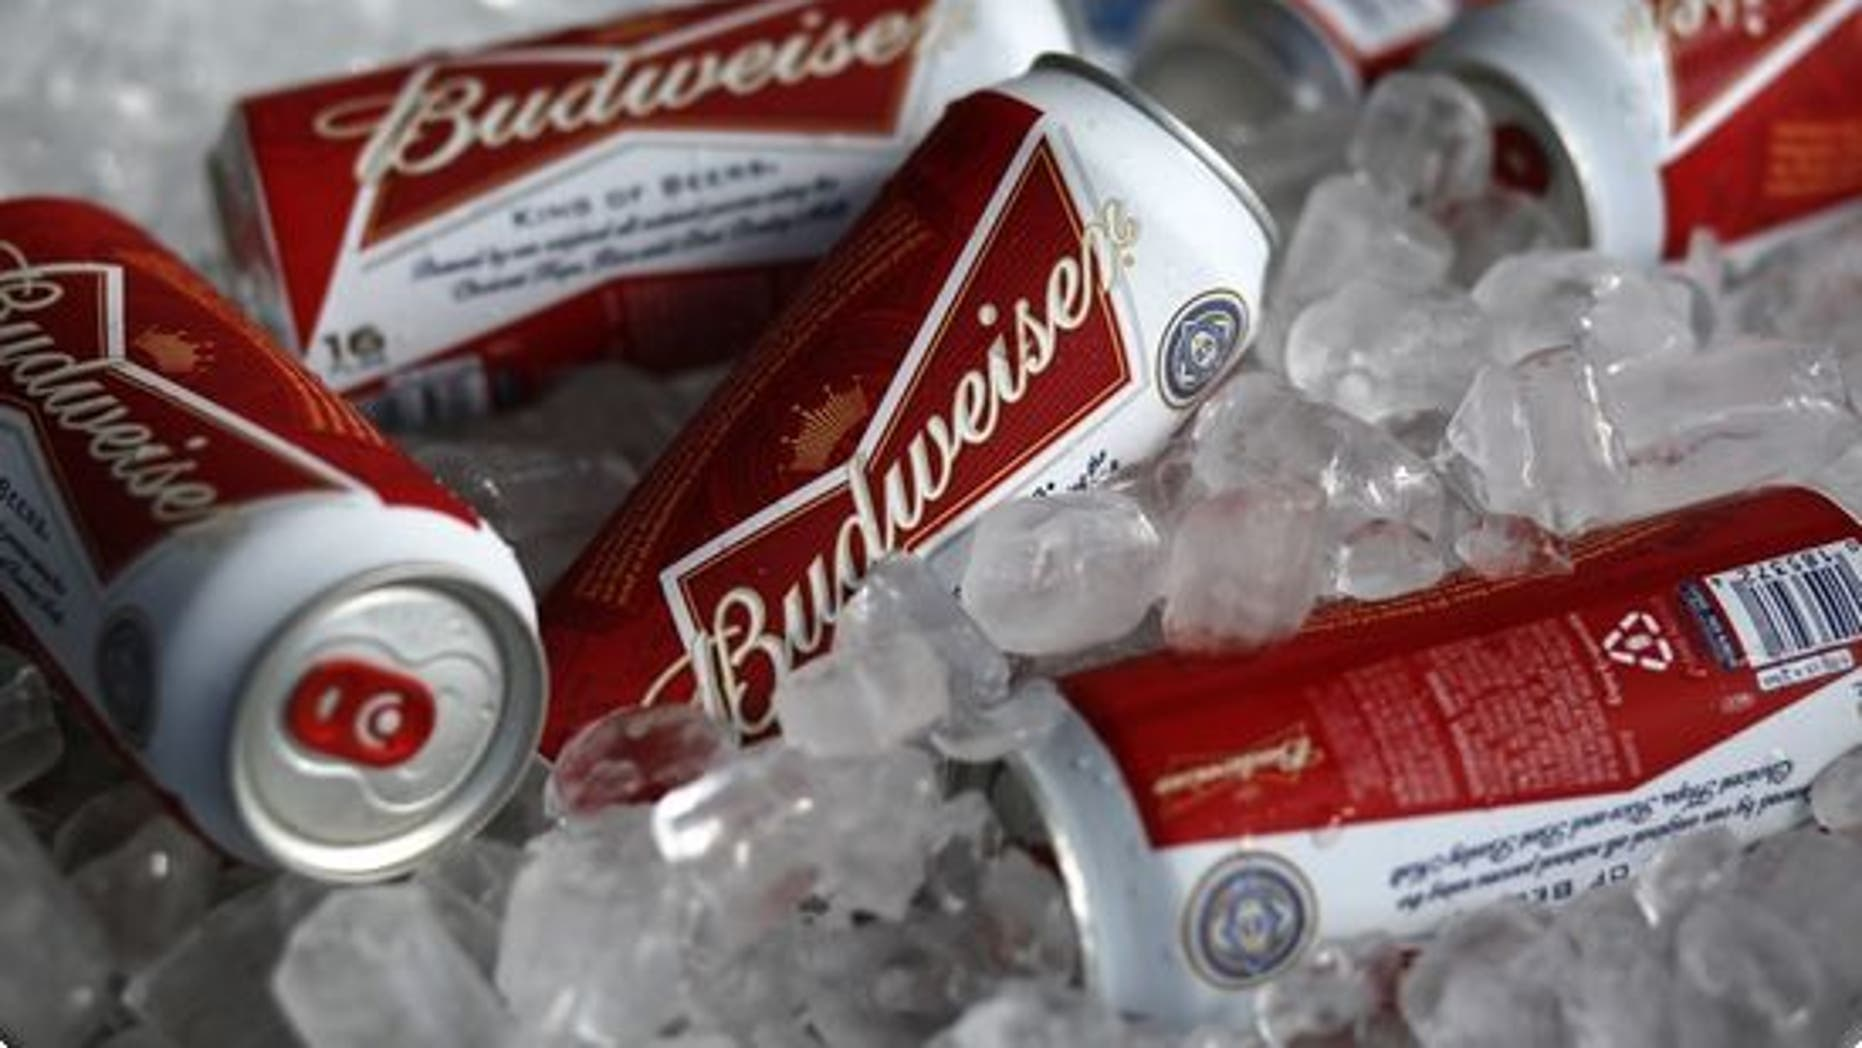 Budweiser is moving away from super macho marketing.